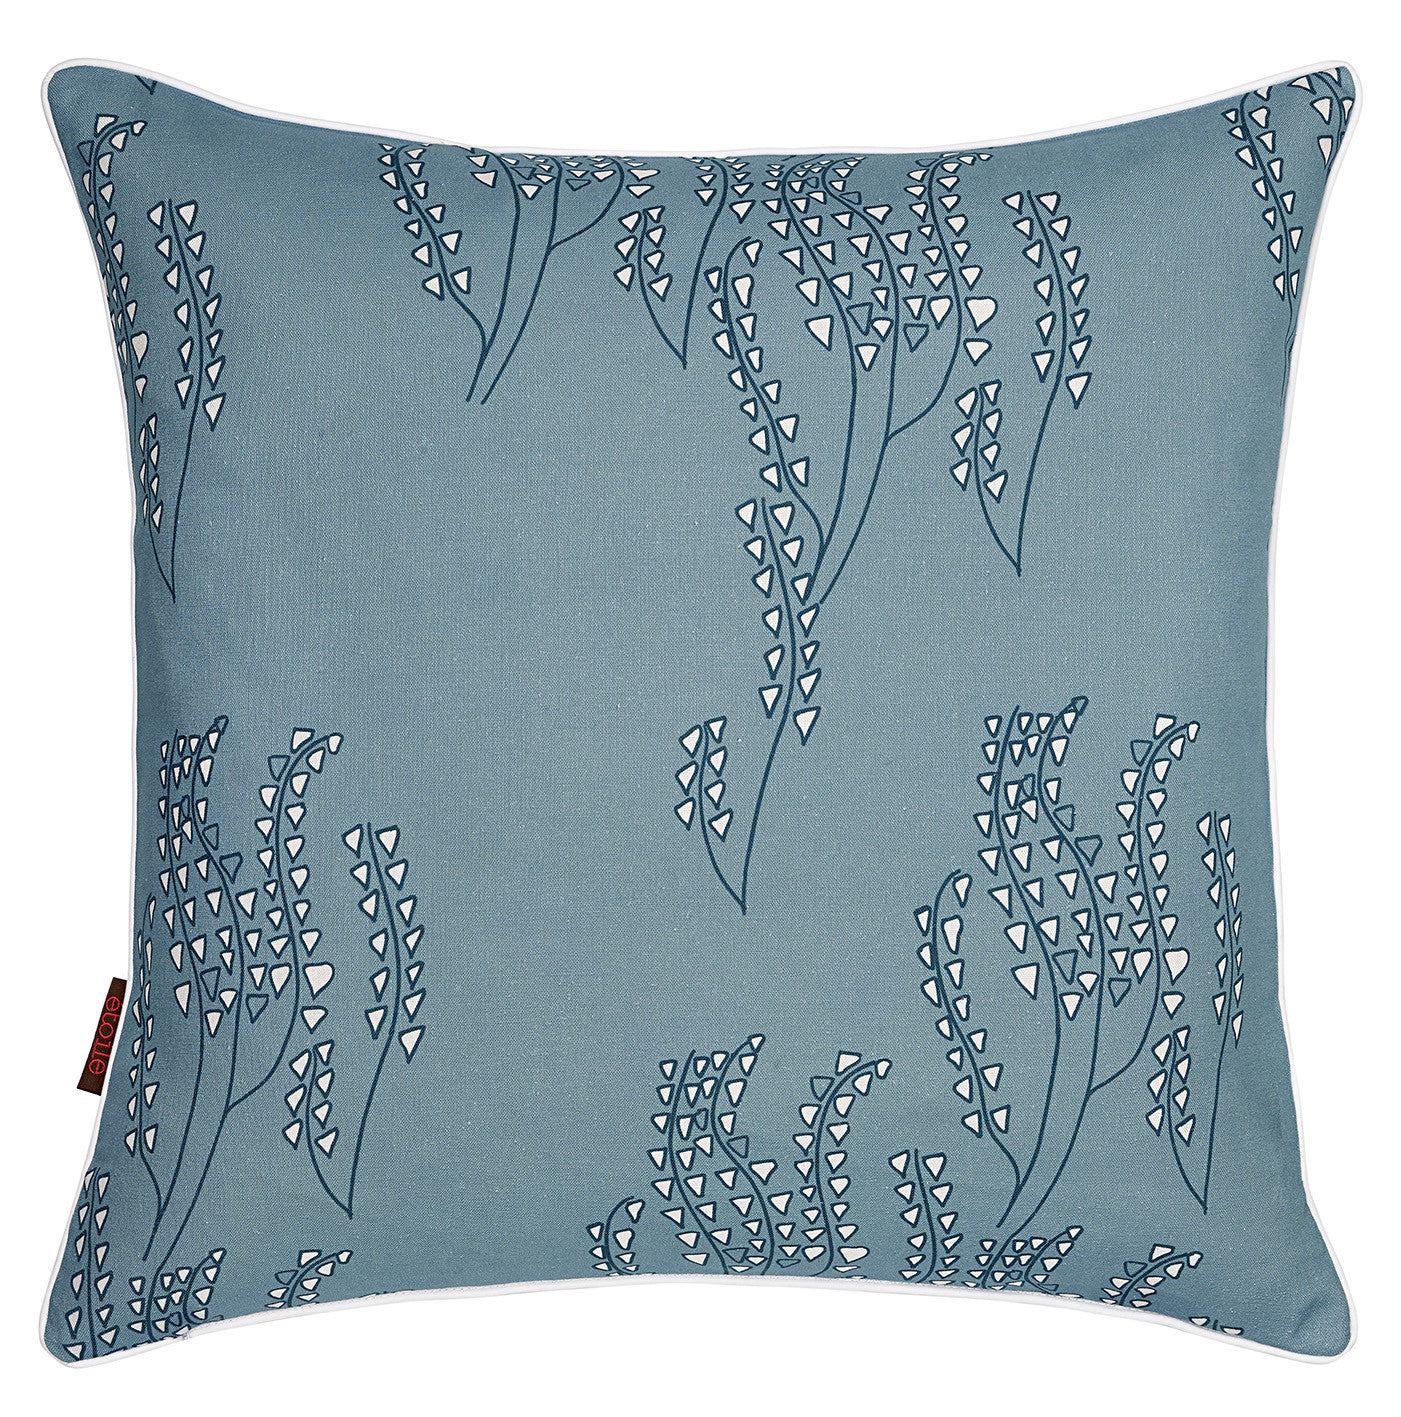 Yuma Grass Pattern Linen Throw Pillow in Light Chambray Blue ships from Canada worldwide including the USA